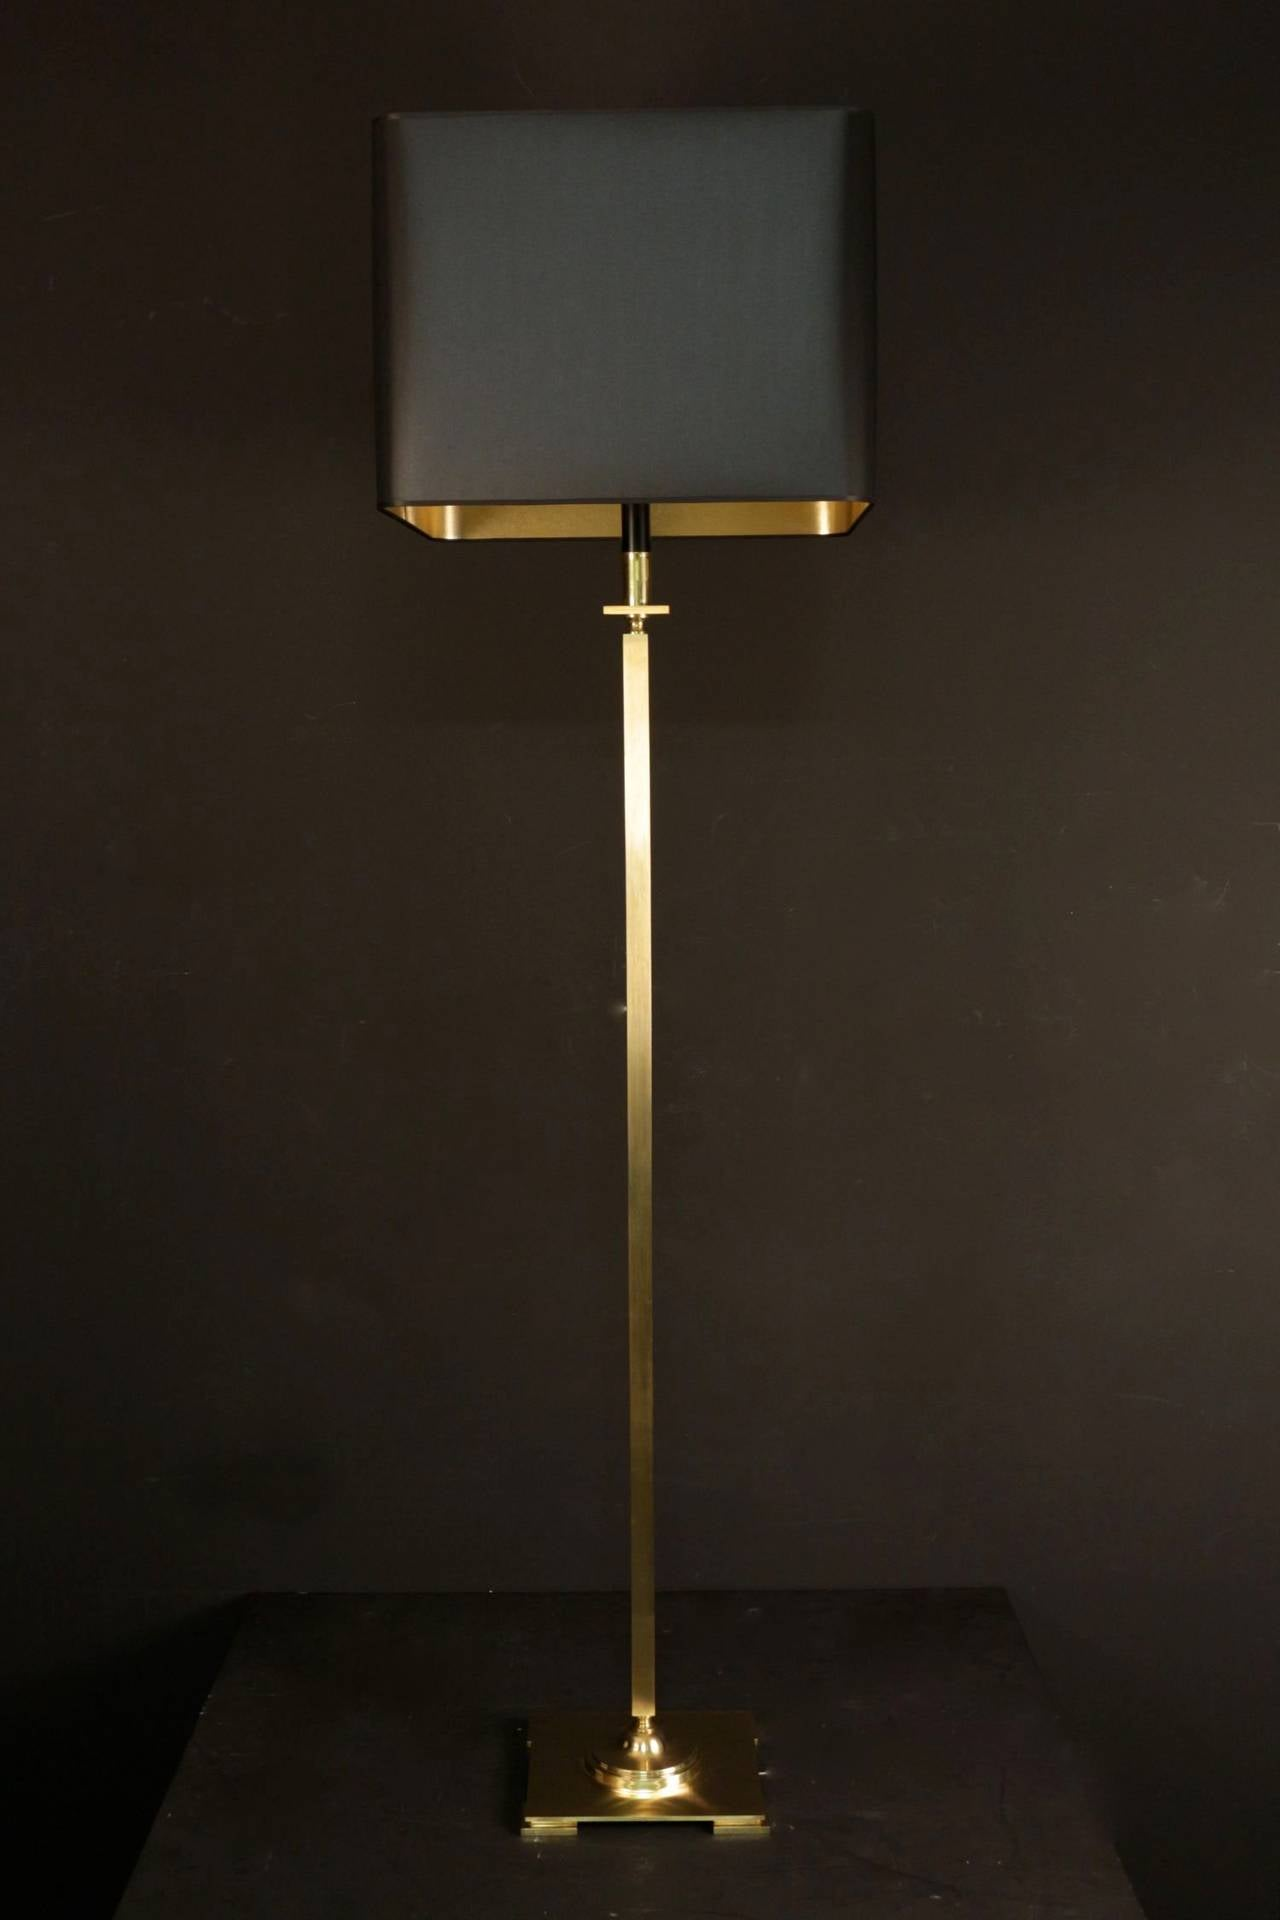 1960s floor lamp by Maison Jansen in gilded brass and blackened brass on the top part. New tailored lam shade with black outside and gilded inside.  Two lighted arms.